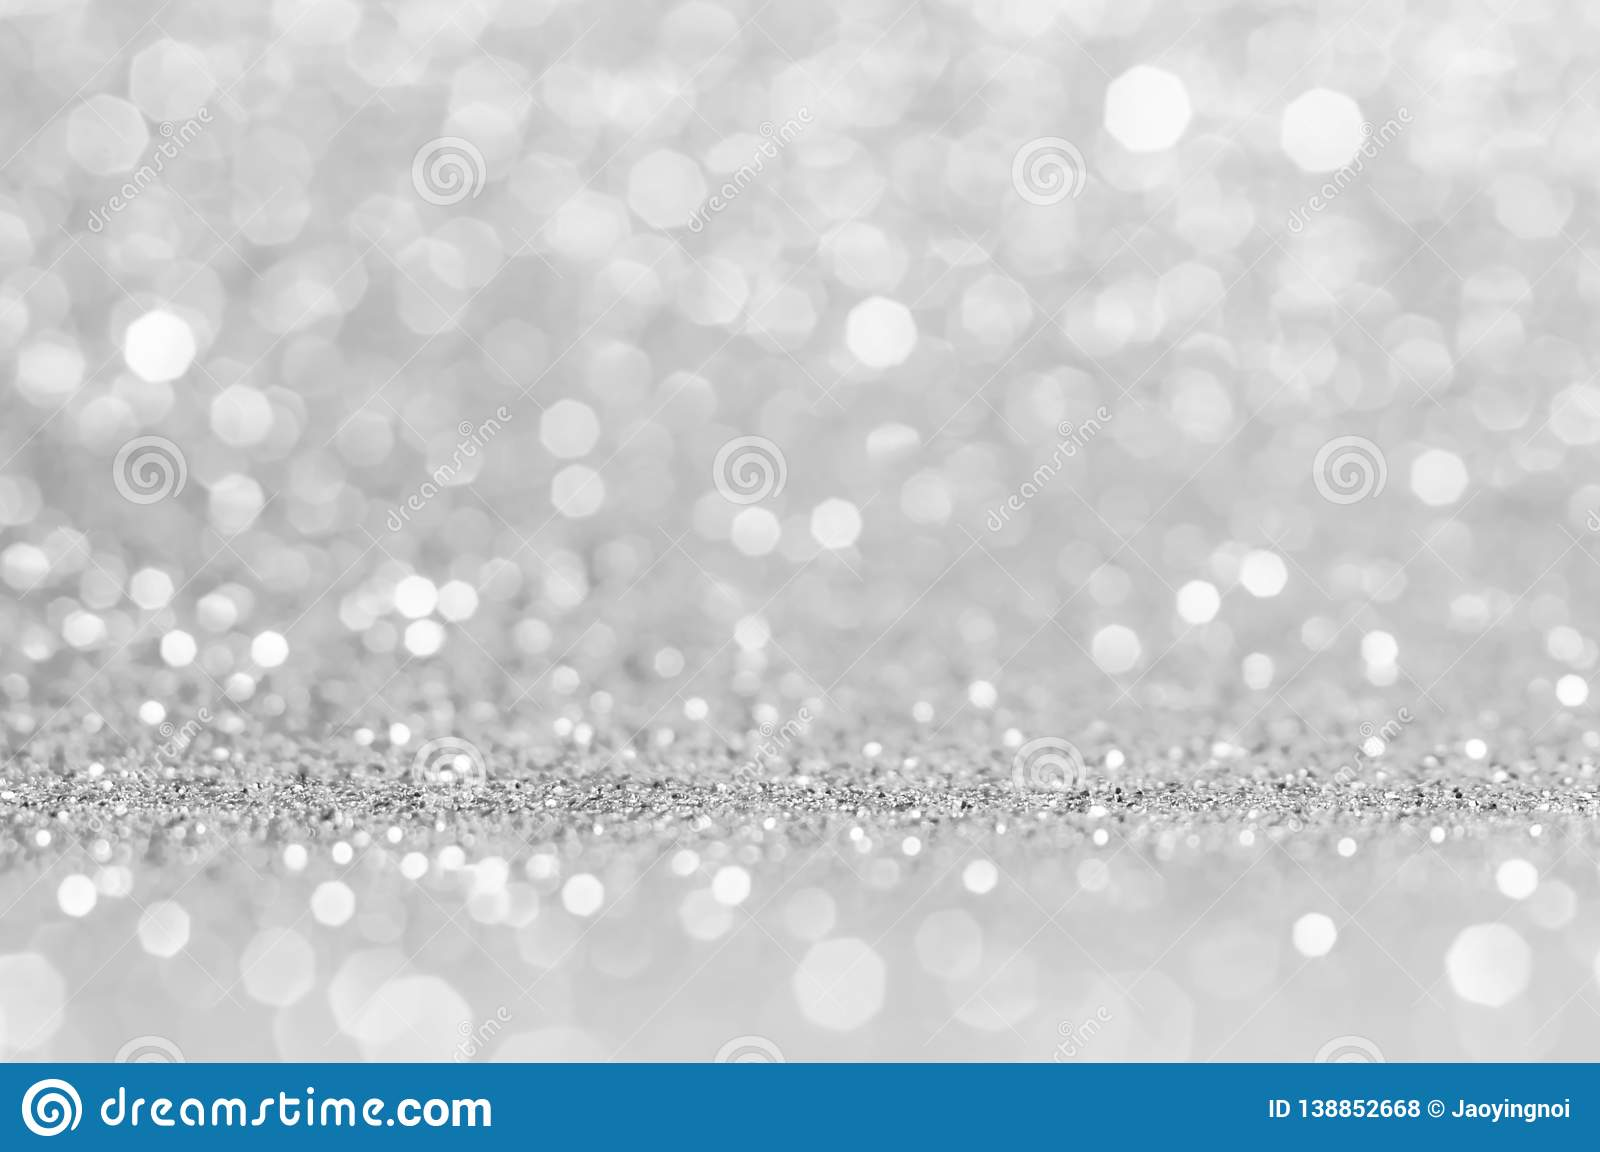 Light grey,white bokeh,circle abstract light background,grey,white shining lights, sparkling glittering Valentines day,women day o